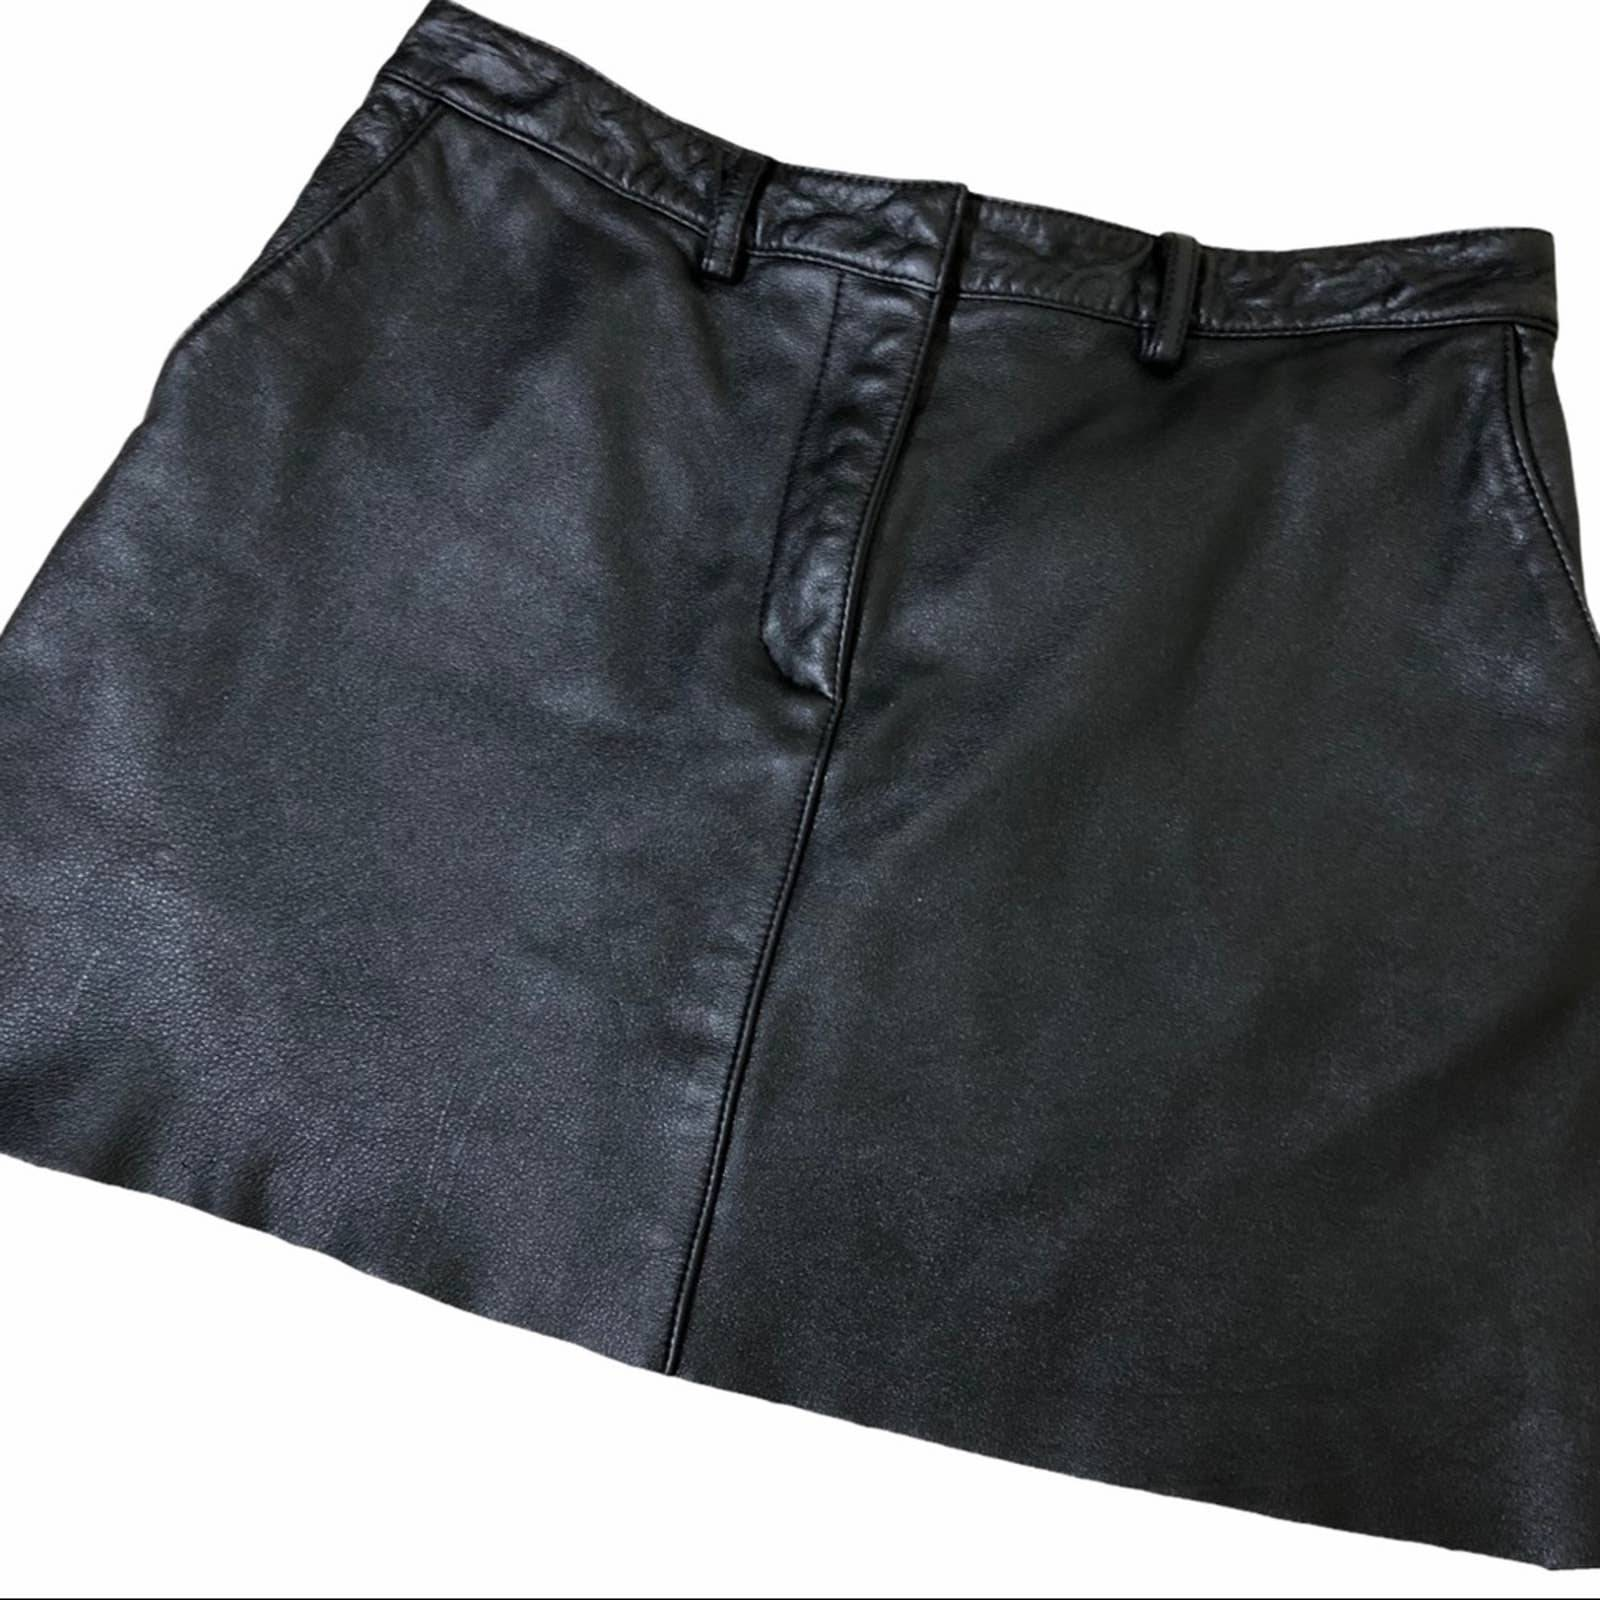 Wilson leather black mini skirt size 10